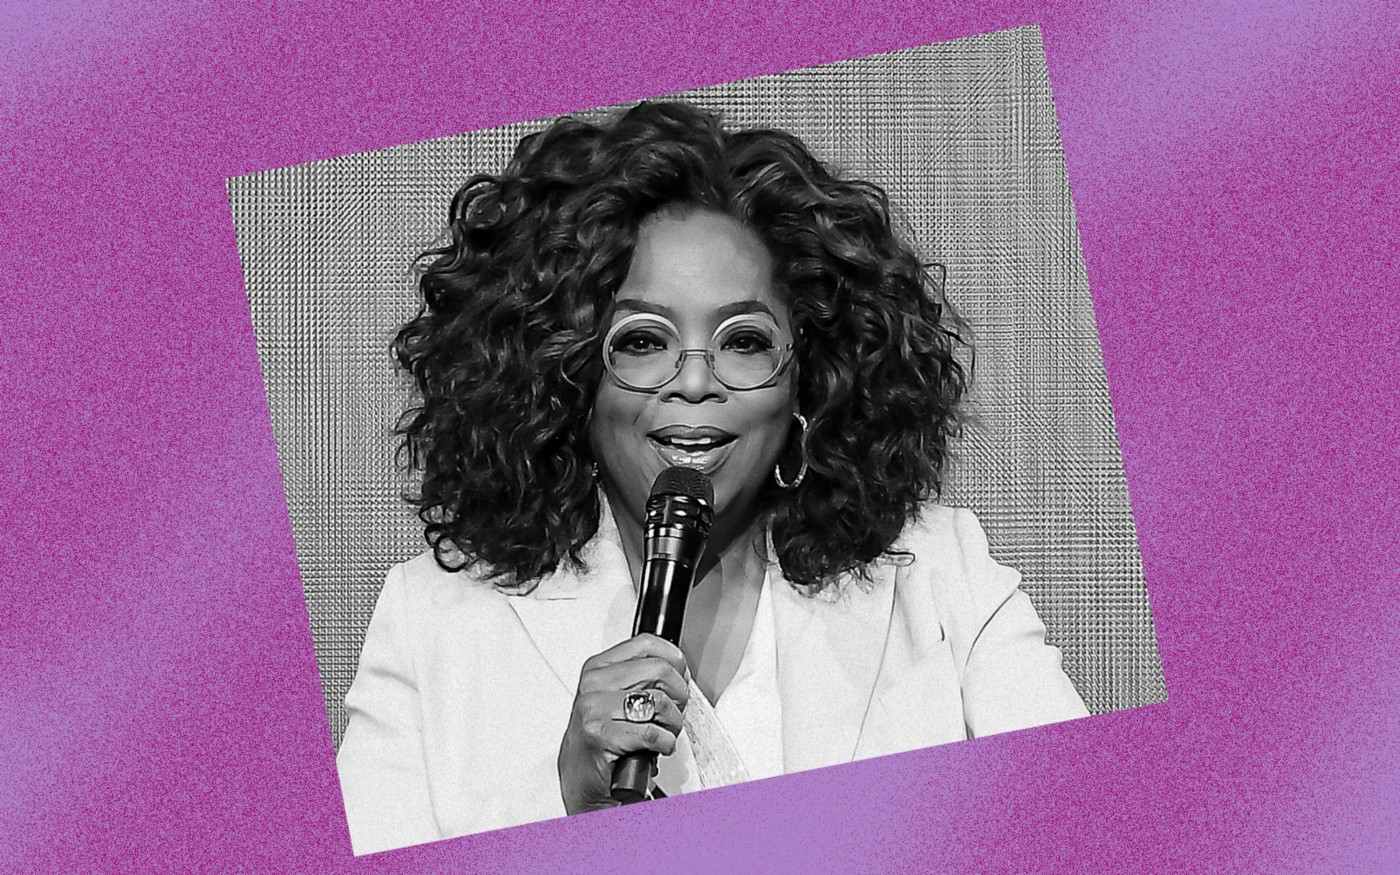 Black and white photo of Oprah Winfrey against a violet background.